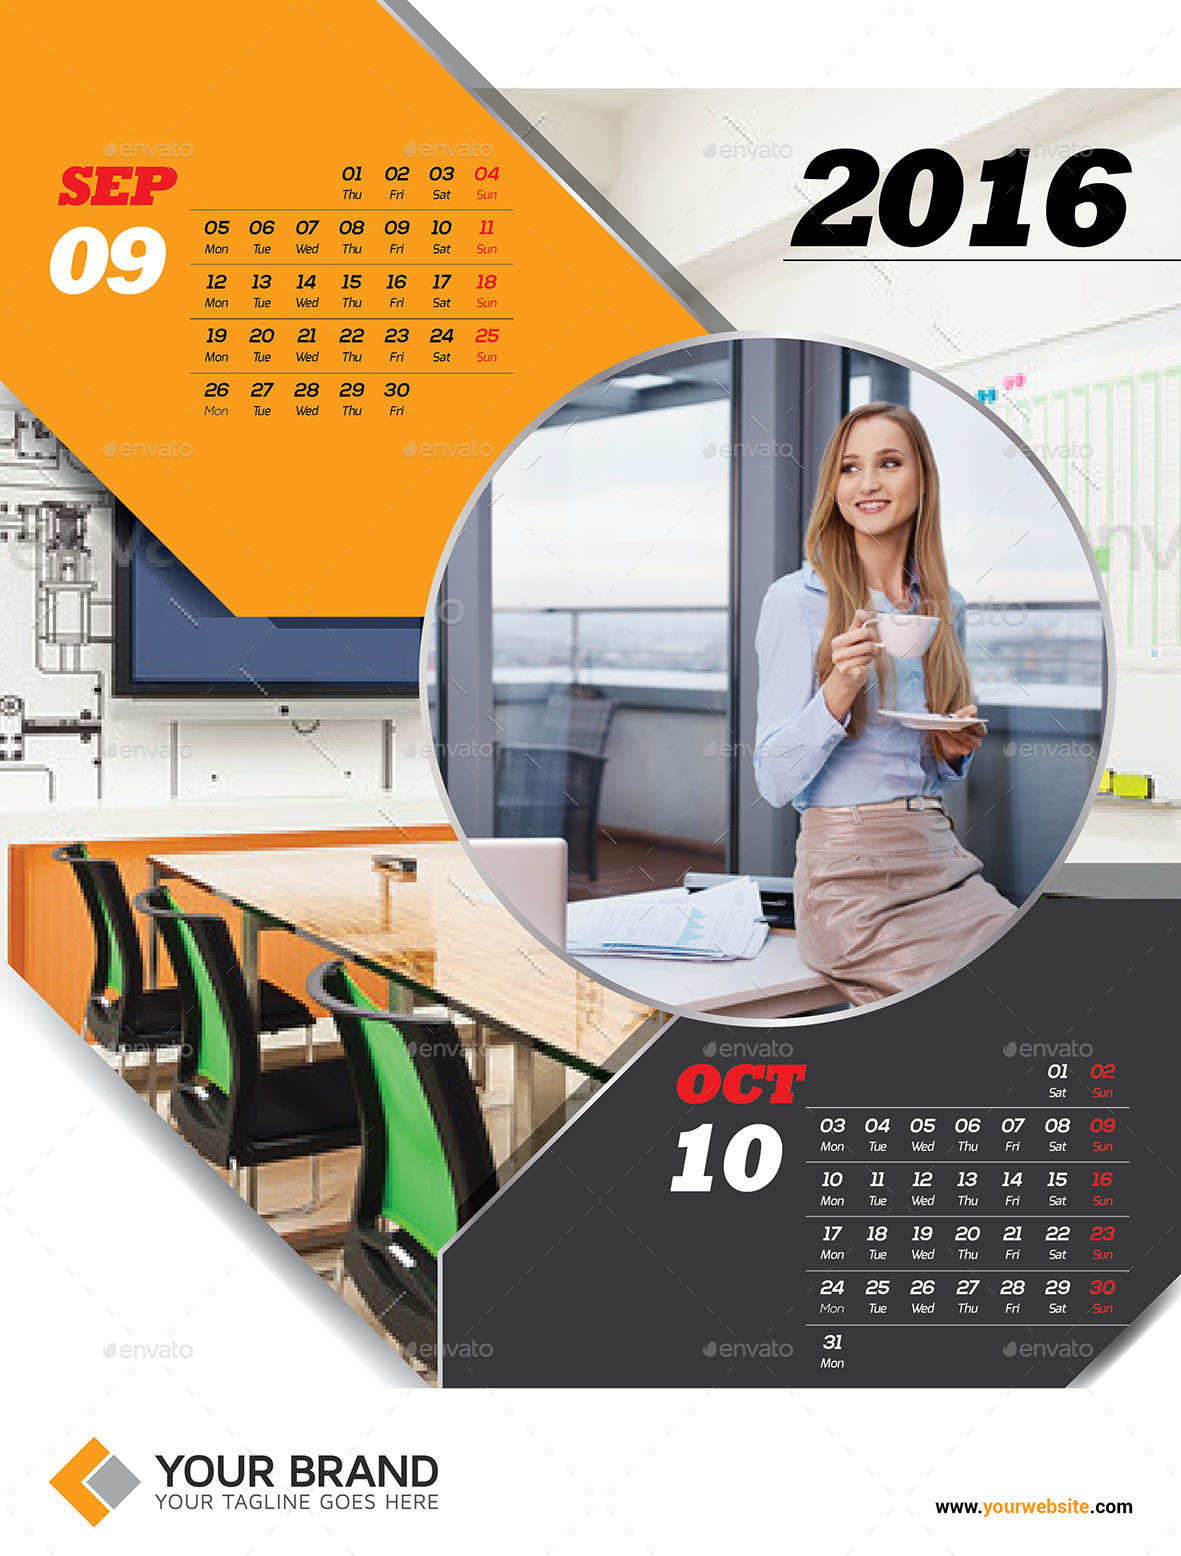 Corporate Wall Calendar Design Templates : Wall calendar by olaylay graphicriver